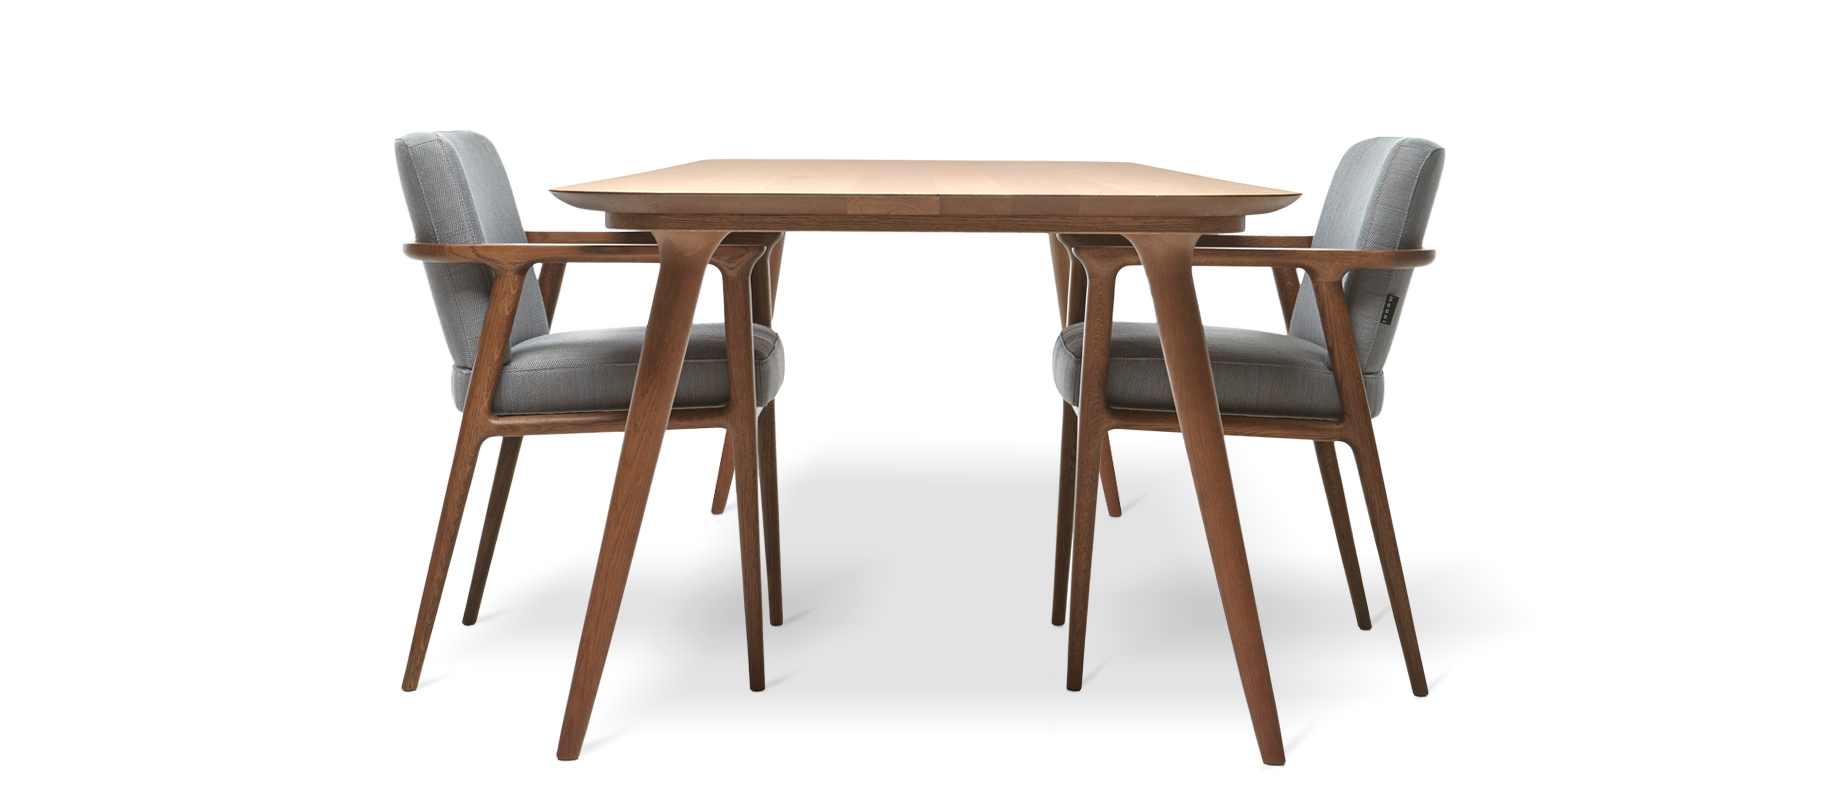 Zio Dining Table Bord Olsson amp Gerthel : zio table oak from www.olssongerthel.se size 1840 x 800 png 616kB